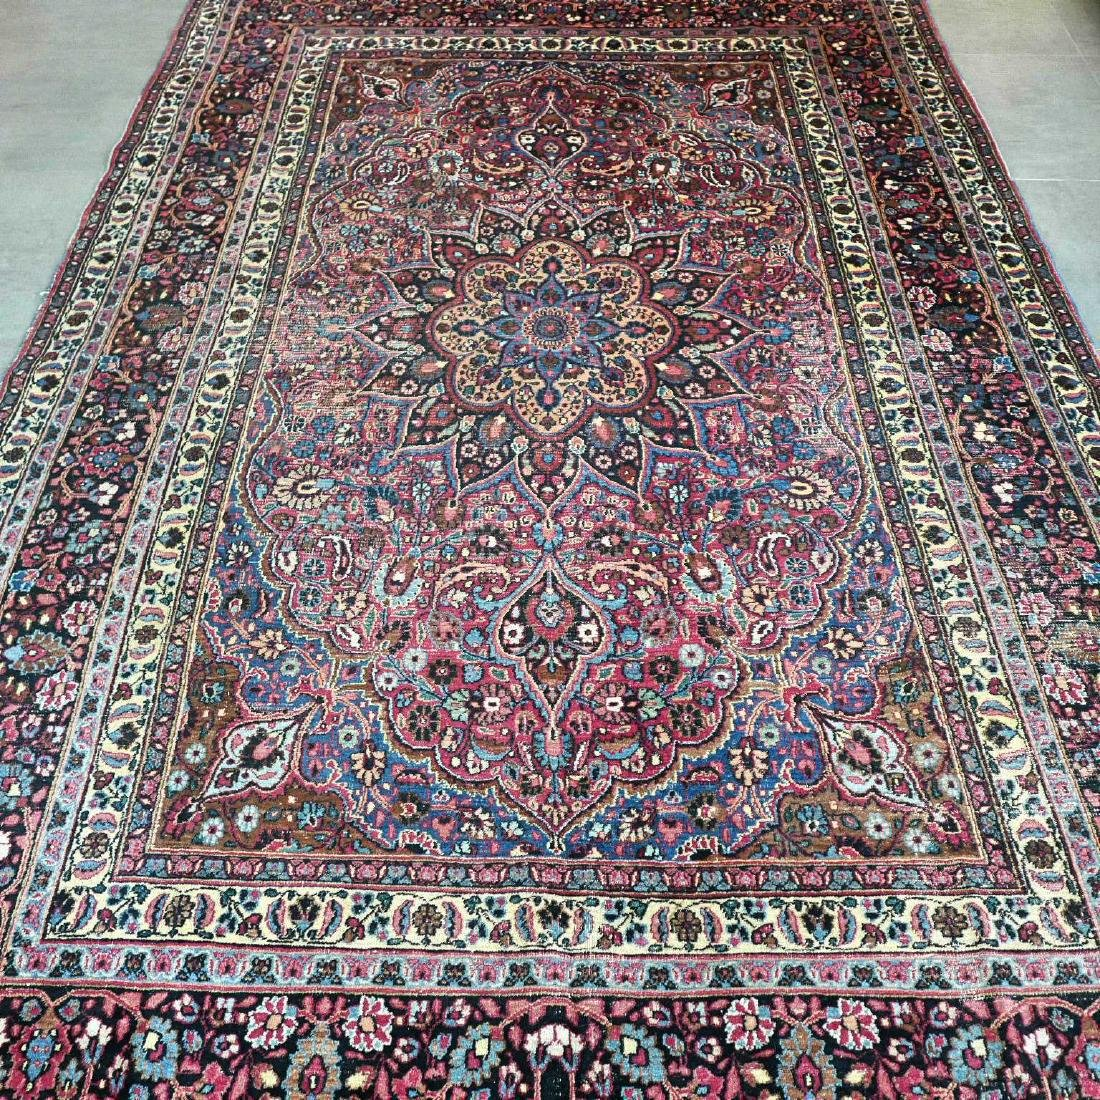 Antique Vintage Mashad Hand Knotted Rug 10.8x7